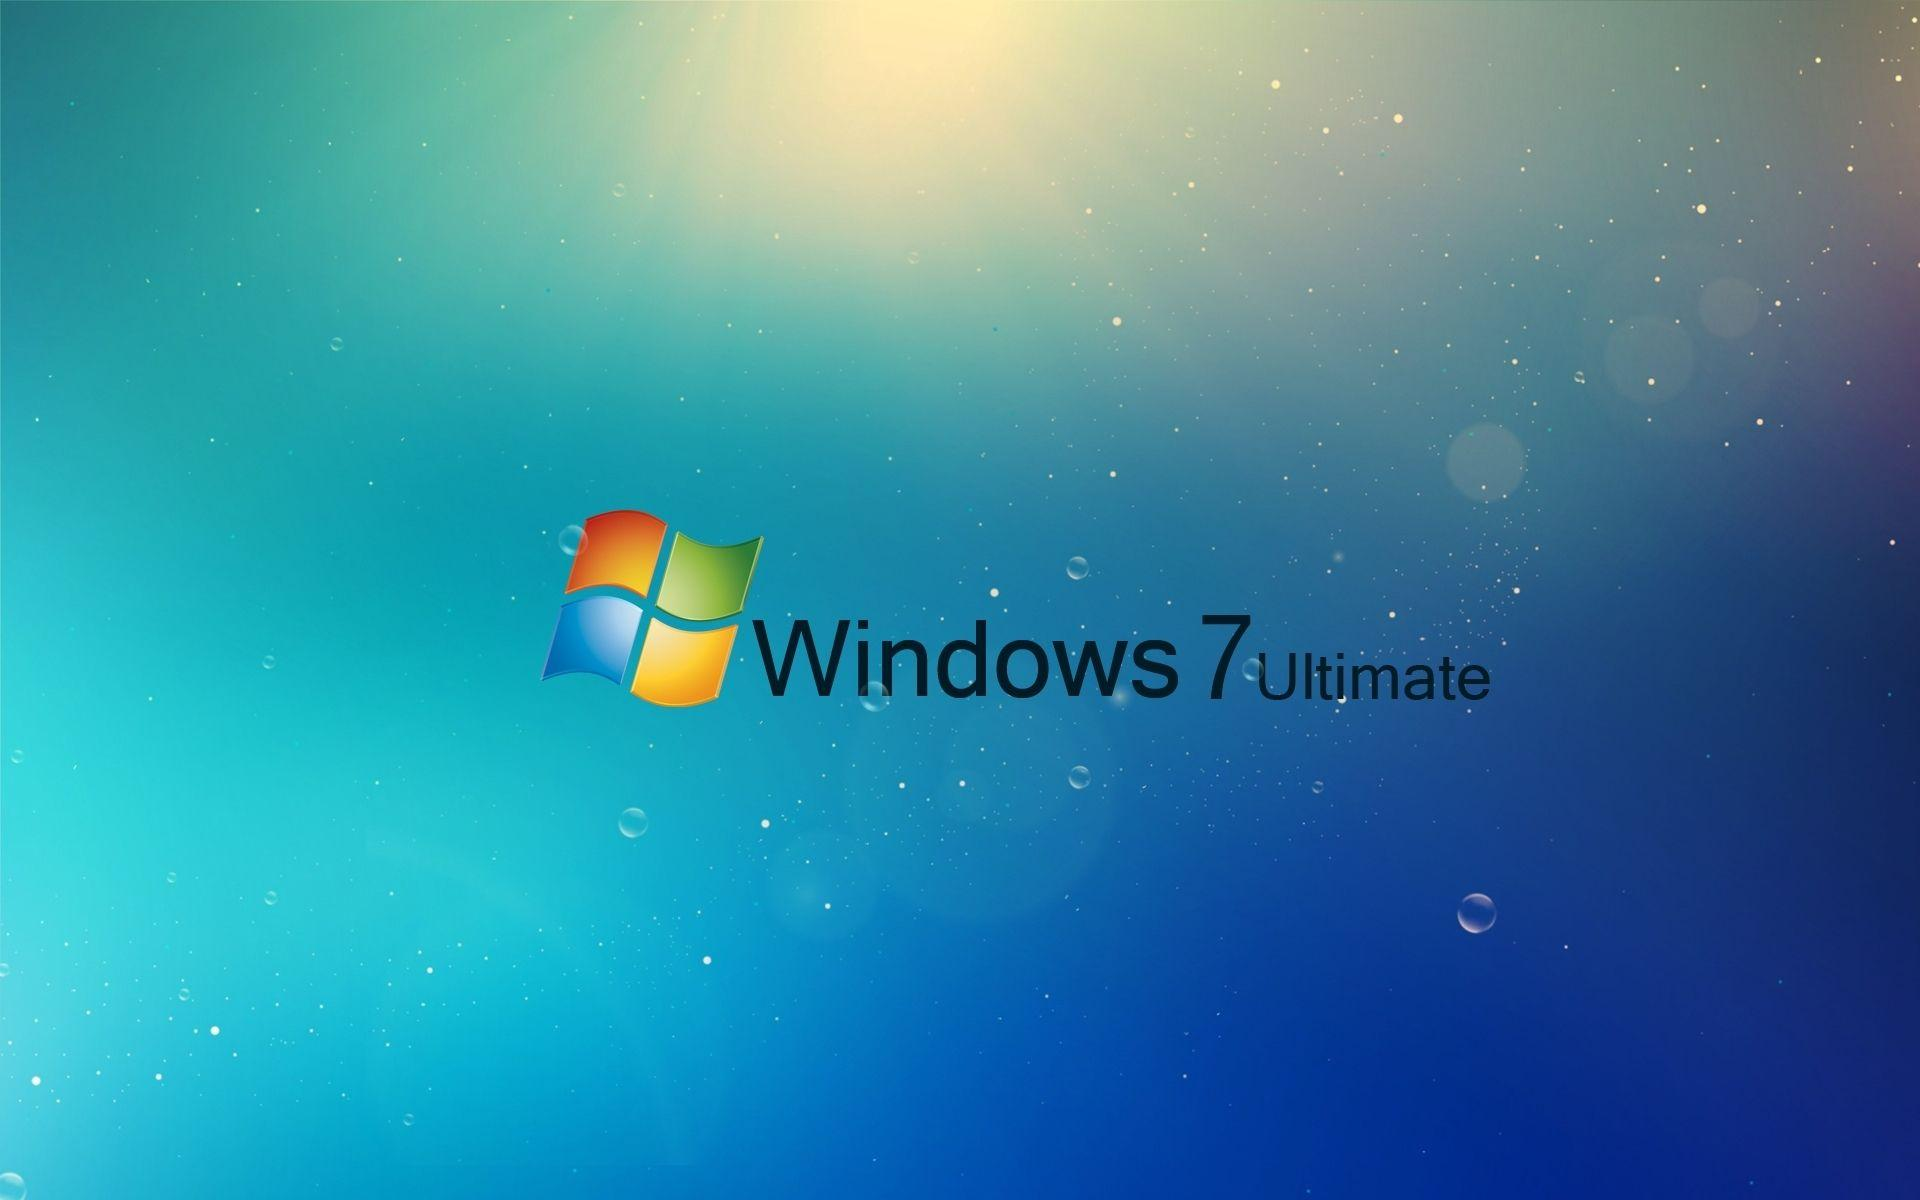 Windows 7 ultimate wallpapers hd wallpaper cave for Window 7 ultimate